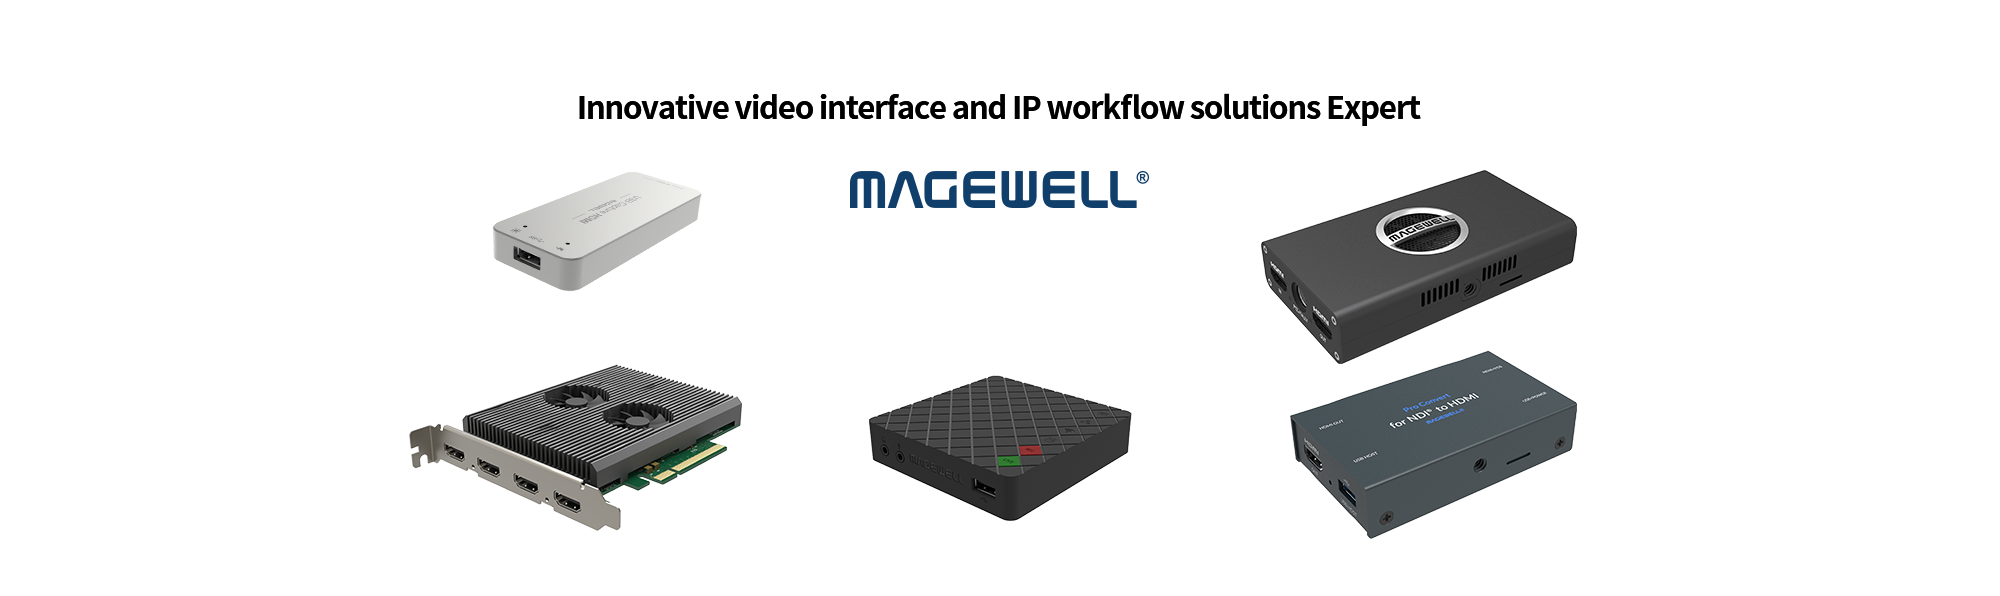 Magewell Products